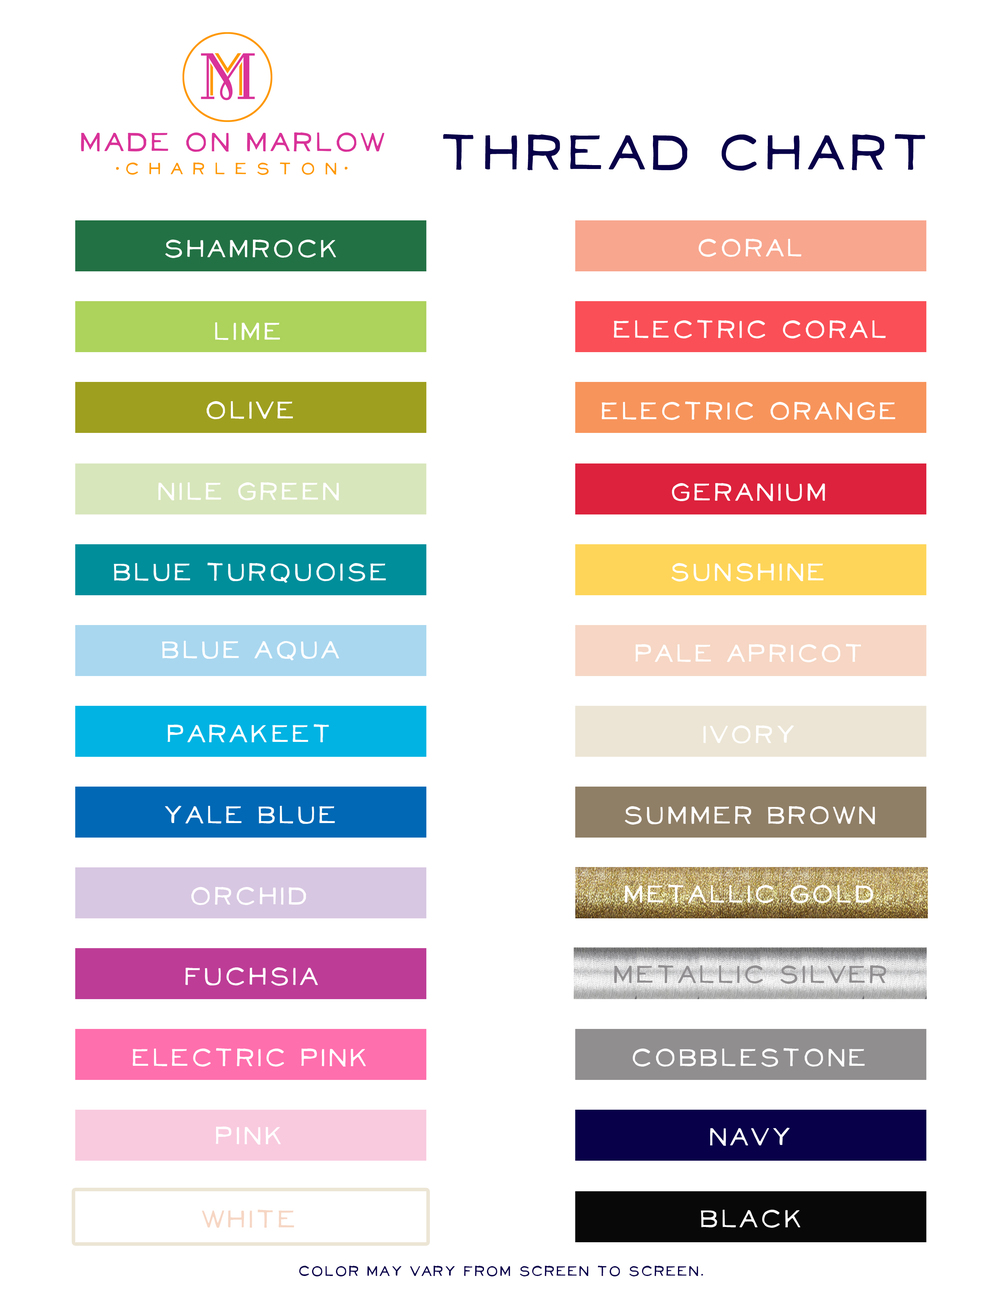 made-on-marlow-thread-chart